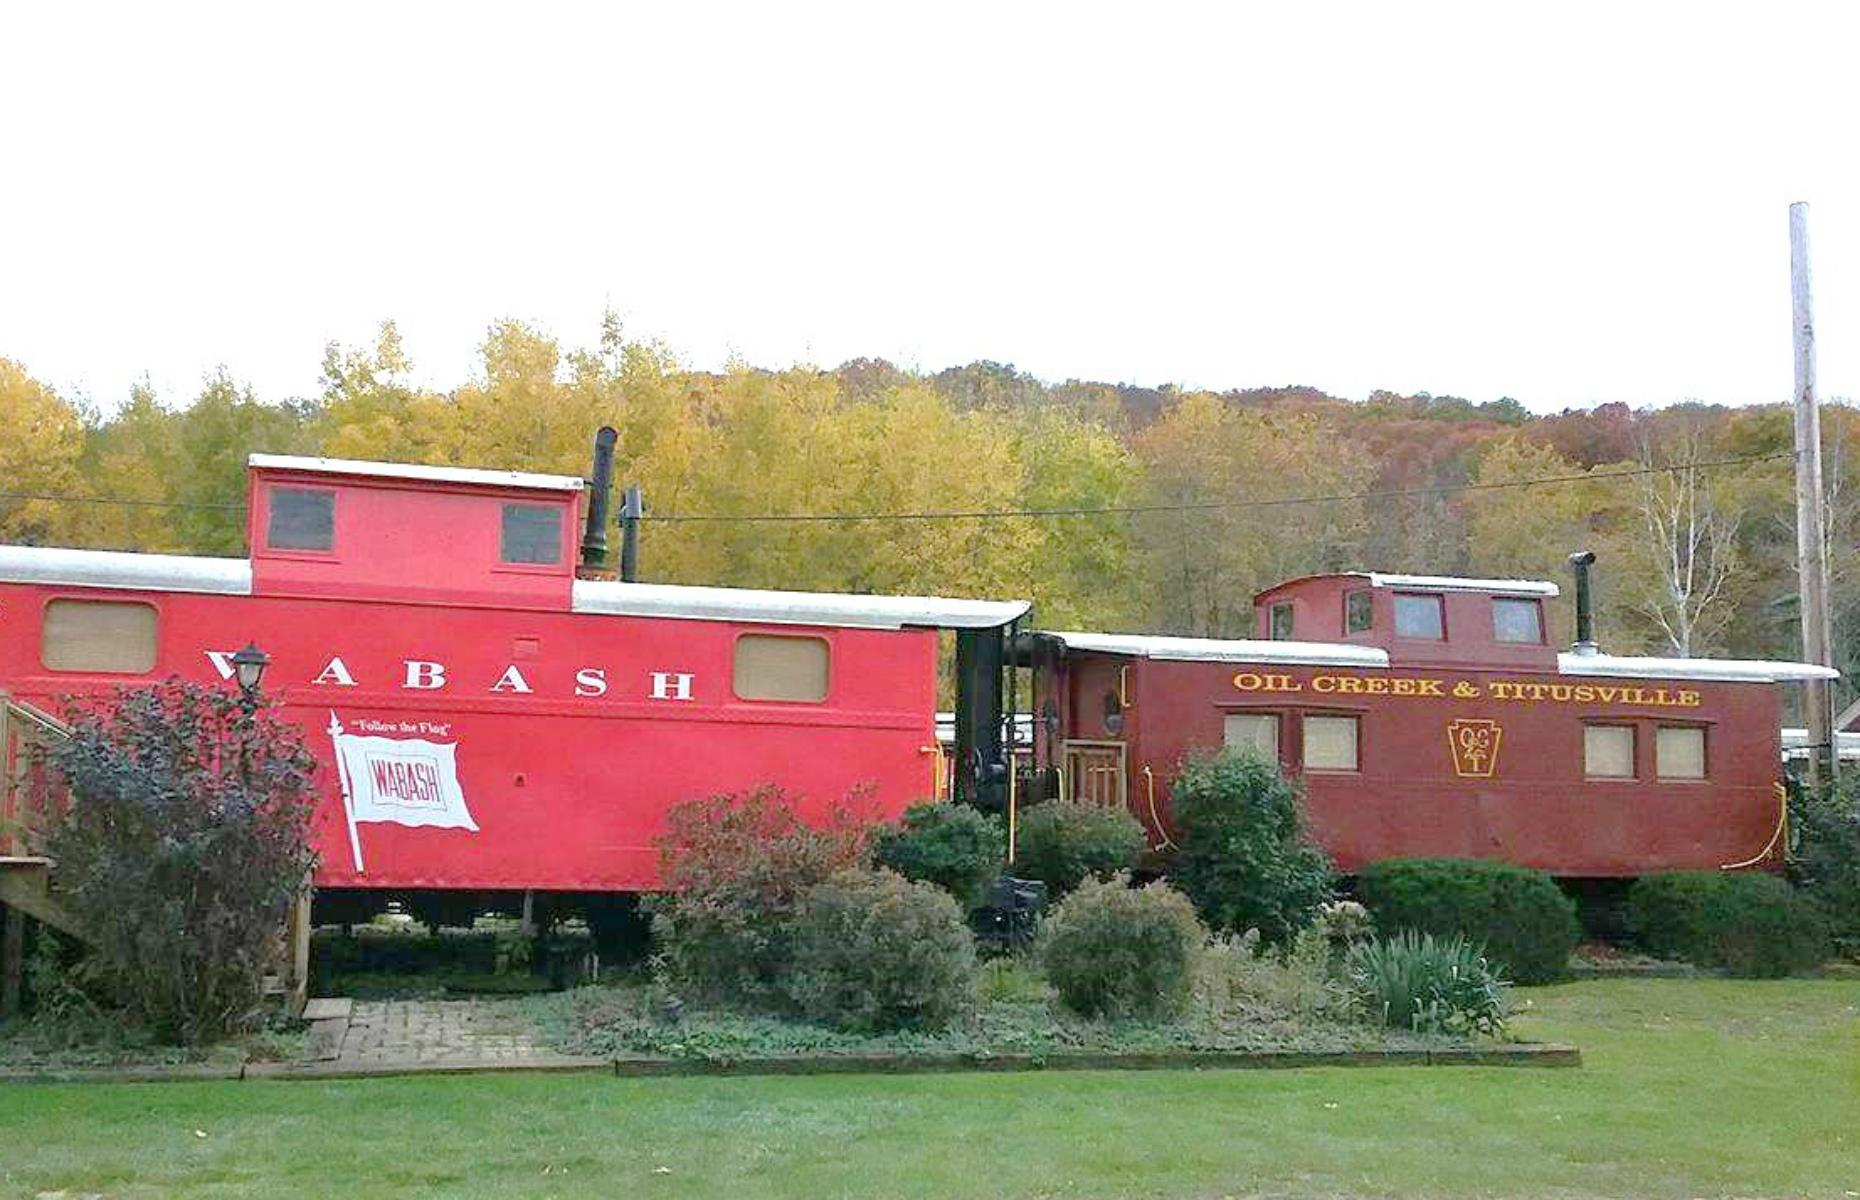 Slide 40 of 52: Spend the night on the tracks at the Caboose Motel, where 21 caboose railroad cars have been converted into cute, individual cabins. Each has twin beds or a king-size and a bathroom with shower, plus domed or bay windows so guests can gaze out and pretend they're on a glamorous journey. They also have deck chairs on the platform, while the cars have easy access to the 9.6-mile (15.4km) Oil Creek State Park trail. The season is from April to October each year.